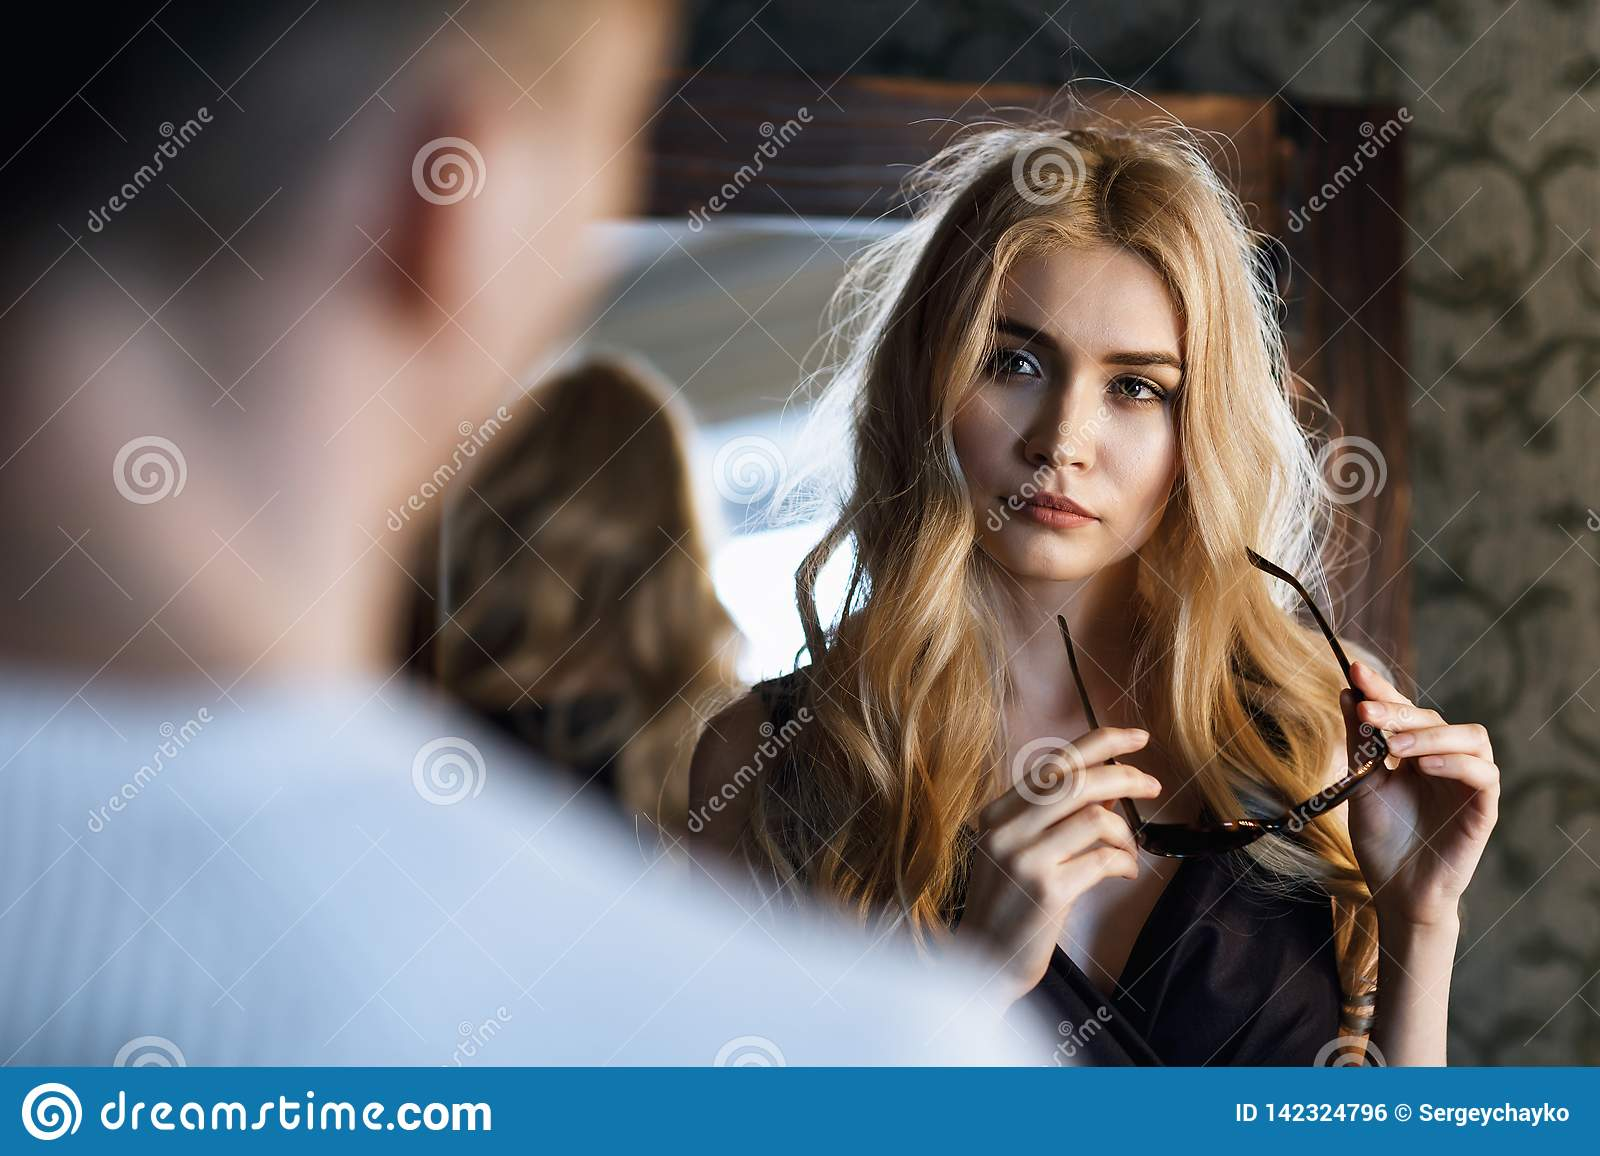 The relationship between a man and a woman. Young beautiful girl looks at her friend